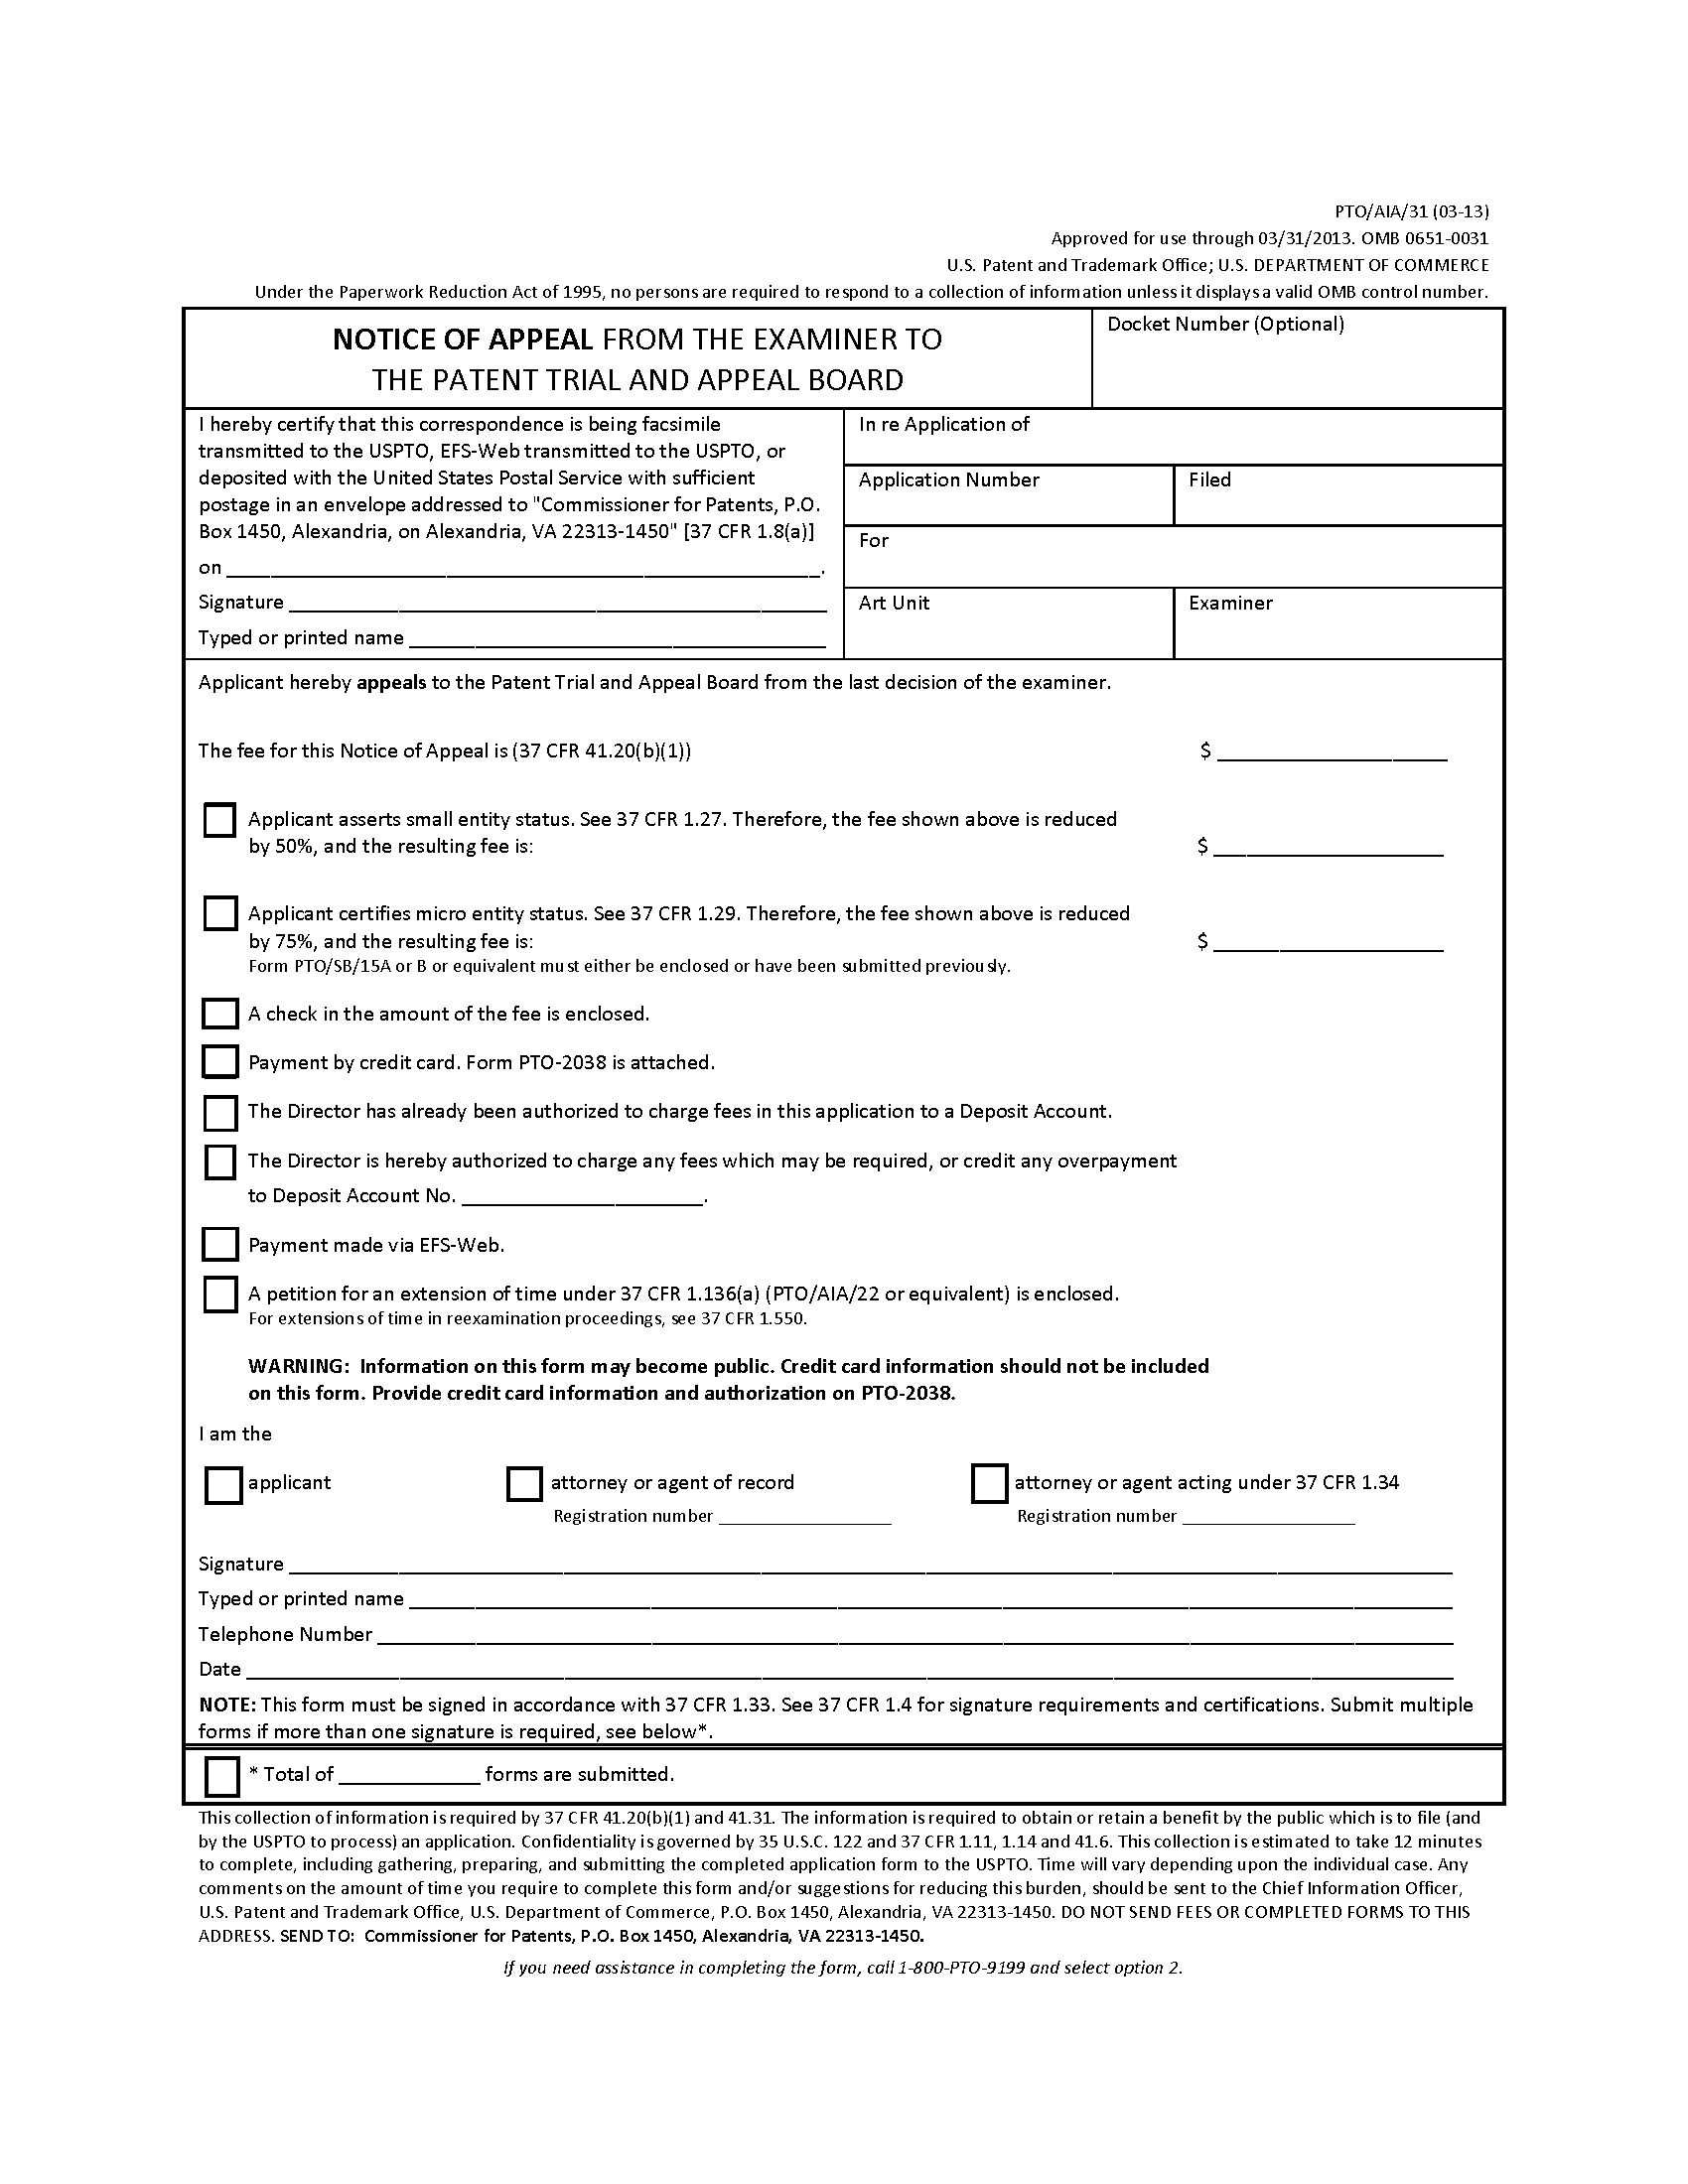 MPEP – Patent Assignment Form